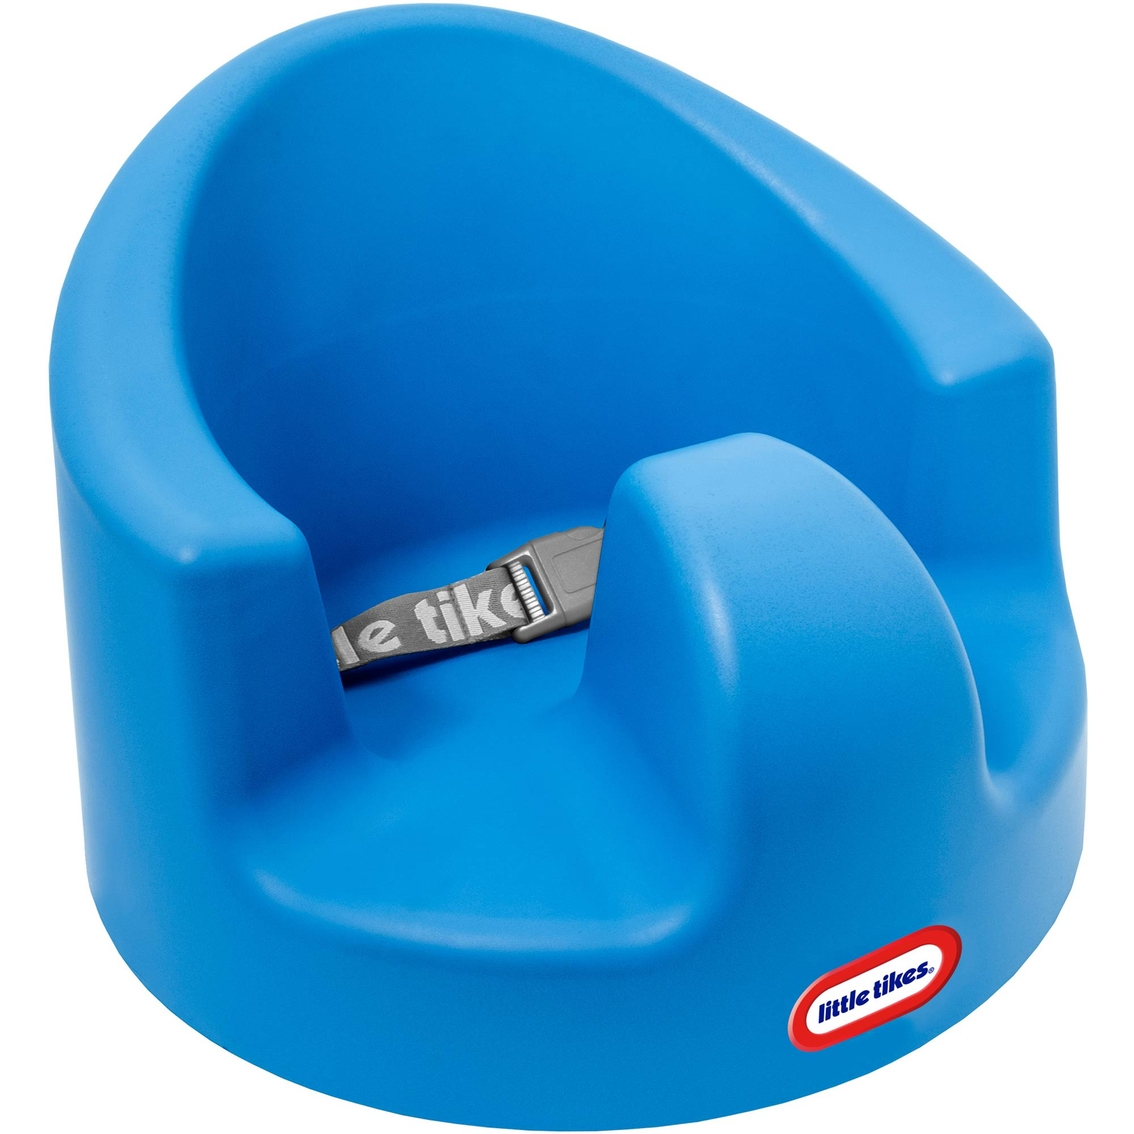 Little Tikes My First Seat Infant Foam Floor Seat | Booster Seats ...